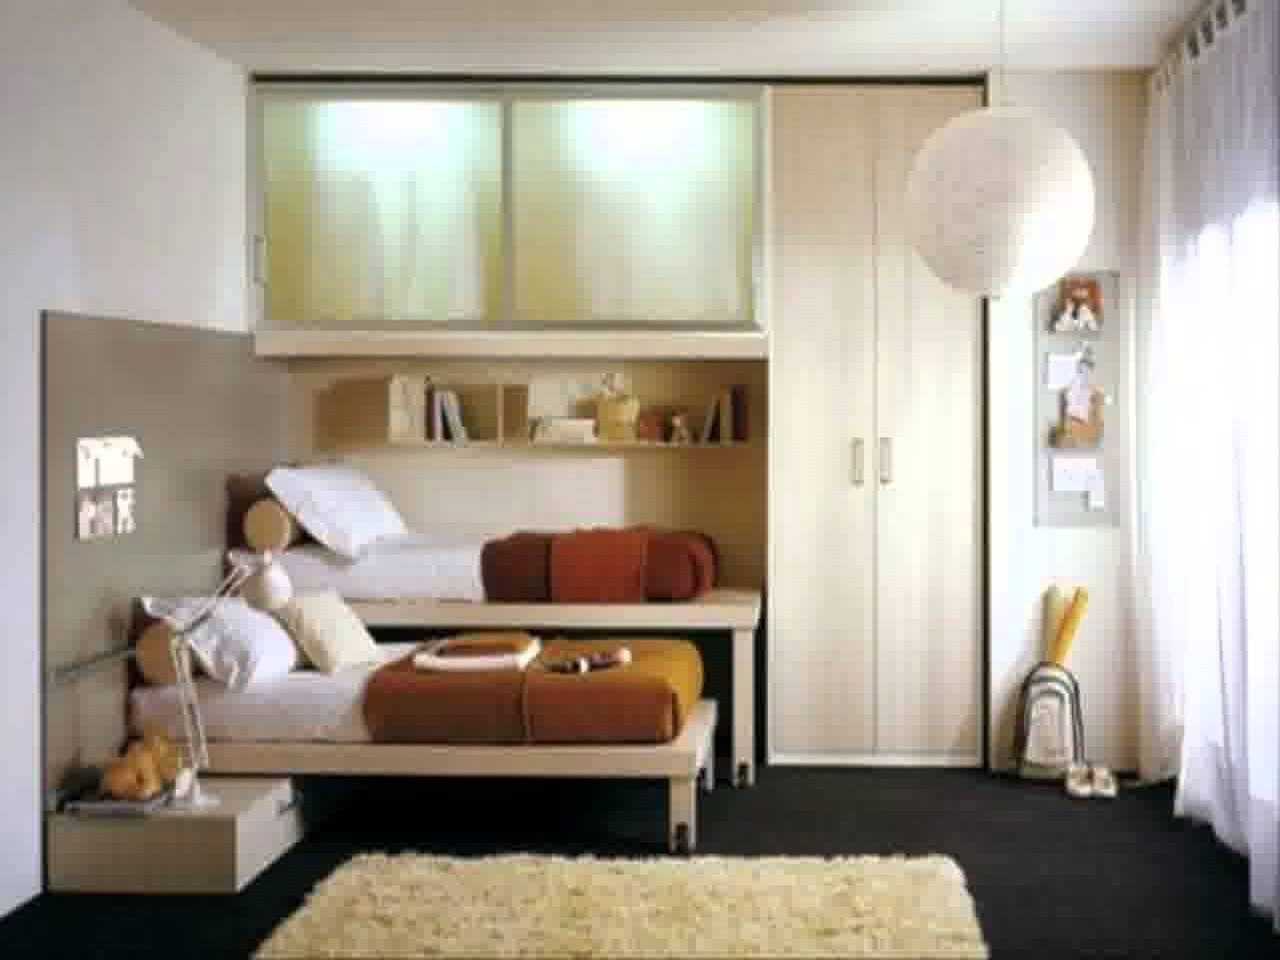 Best Layout For Small Bedroom Small Bedroom Design The Best Practice For Designing Small